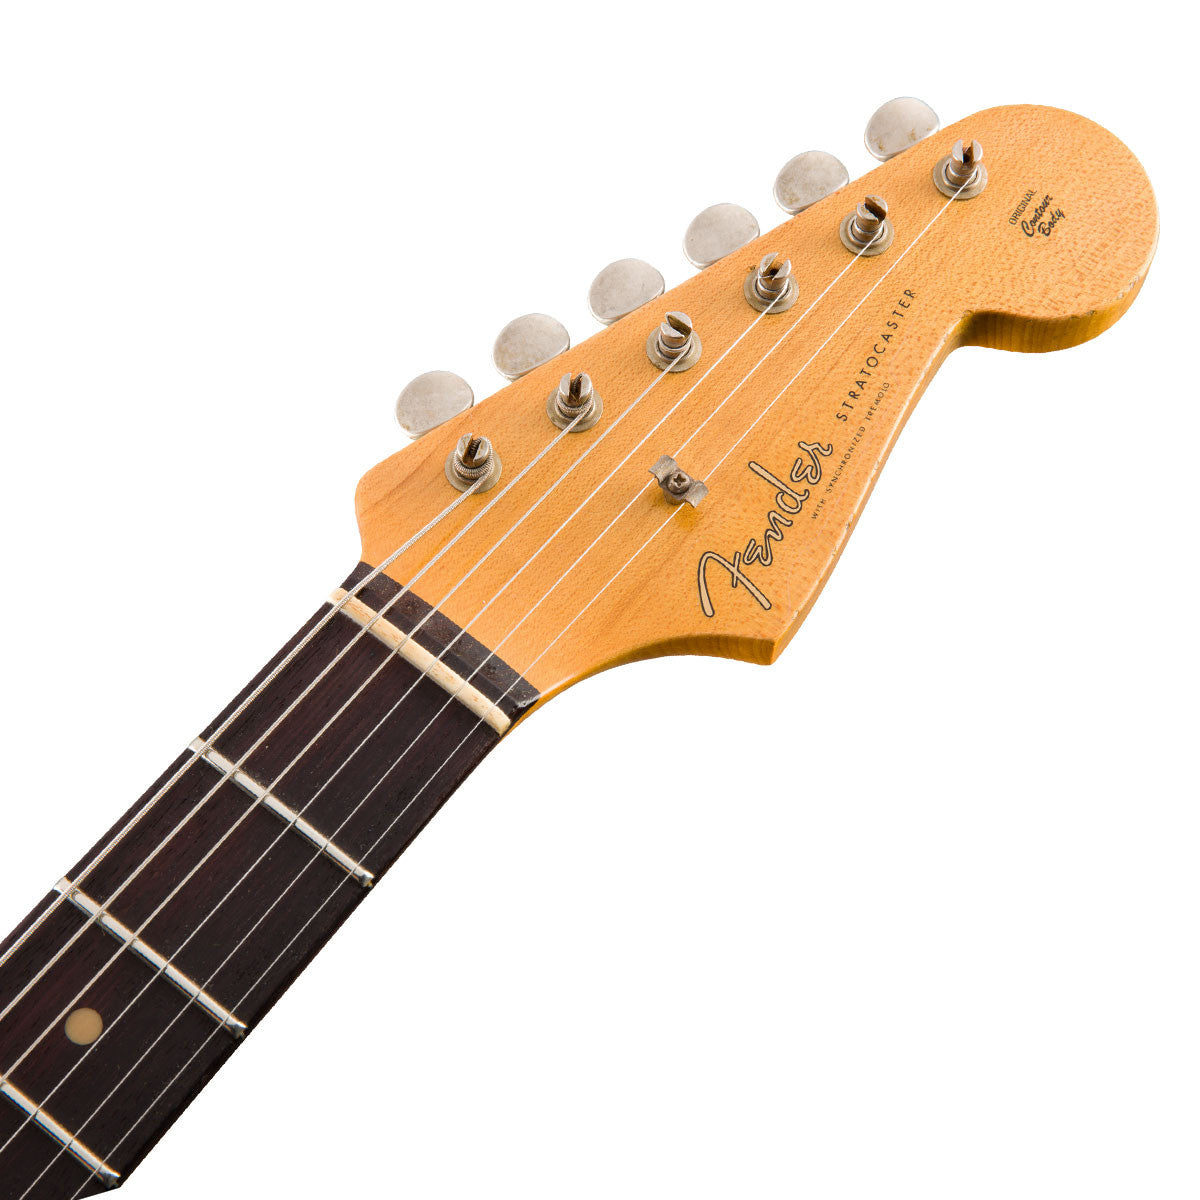 Fender Custom Shop - 1960 Relic Stratocaster - Chocolate 3-Tone Sunburst | Lucky Fret Music Co.